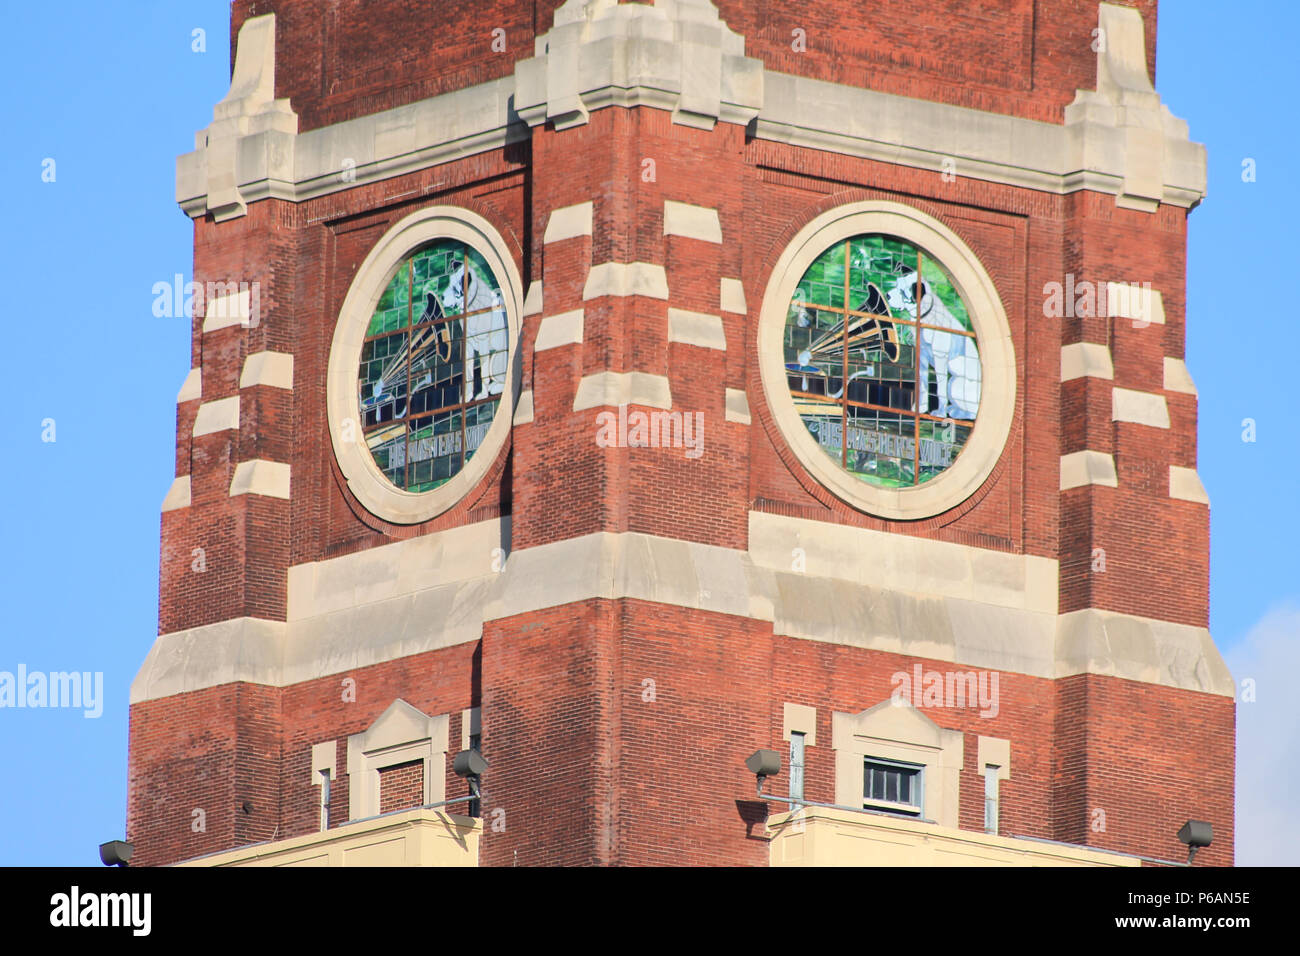 The Nipper building, former Camden New Jersey  home of building 17 of the RCA Victor Company. - Stock Image